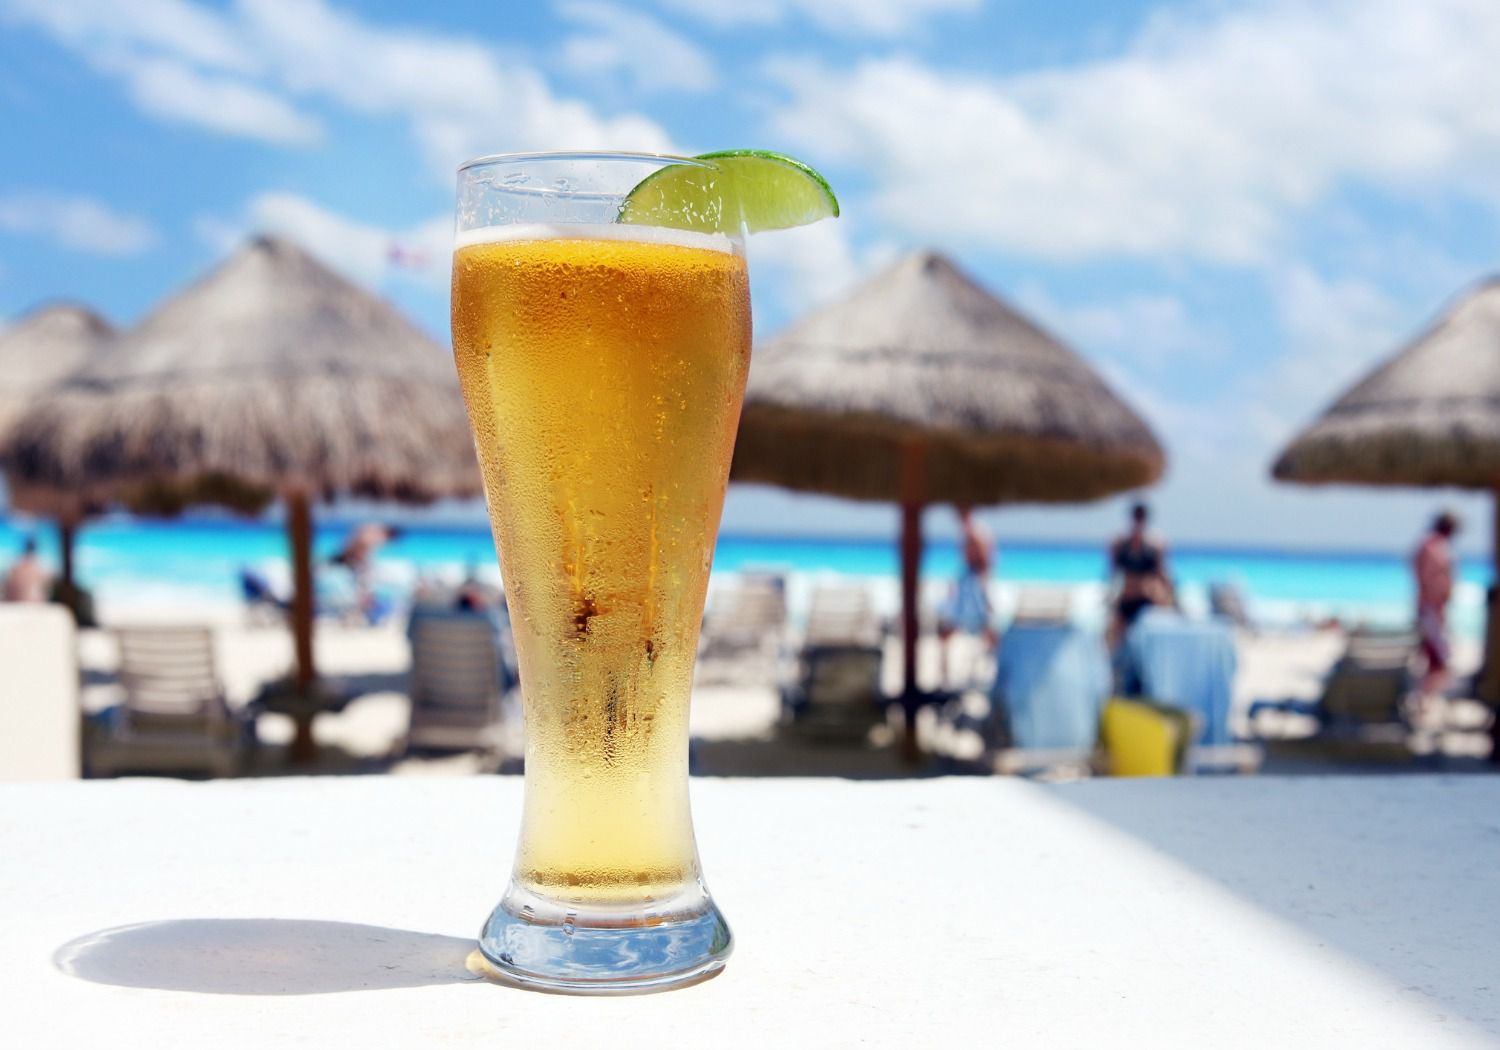 What To Know About The Drinking Age In Mexico - Age to drink in mexico